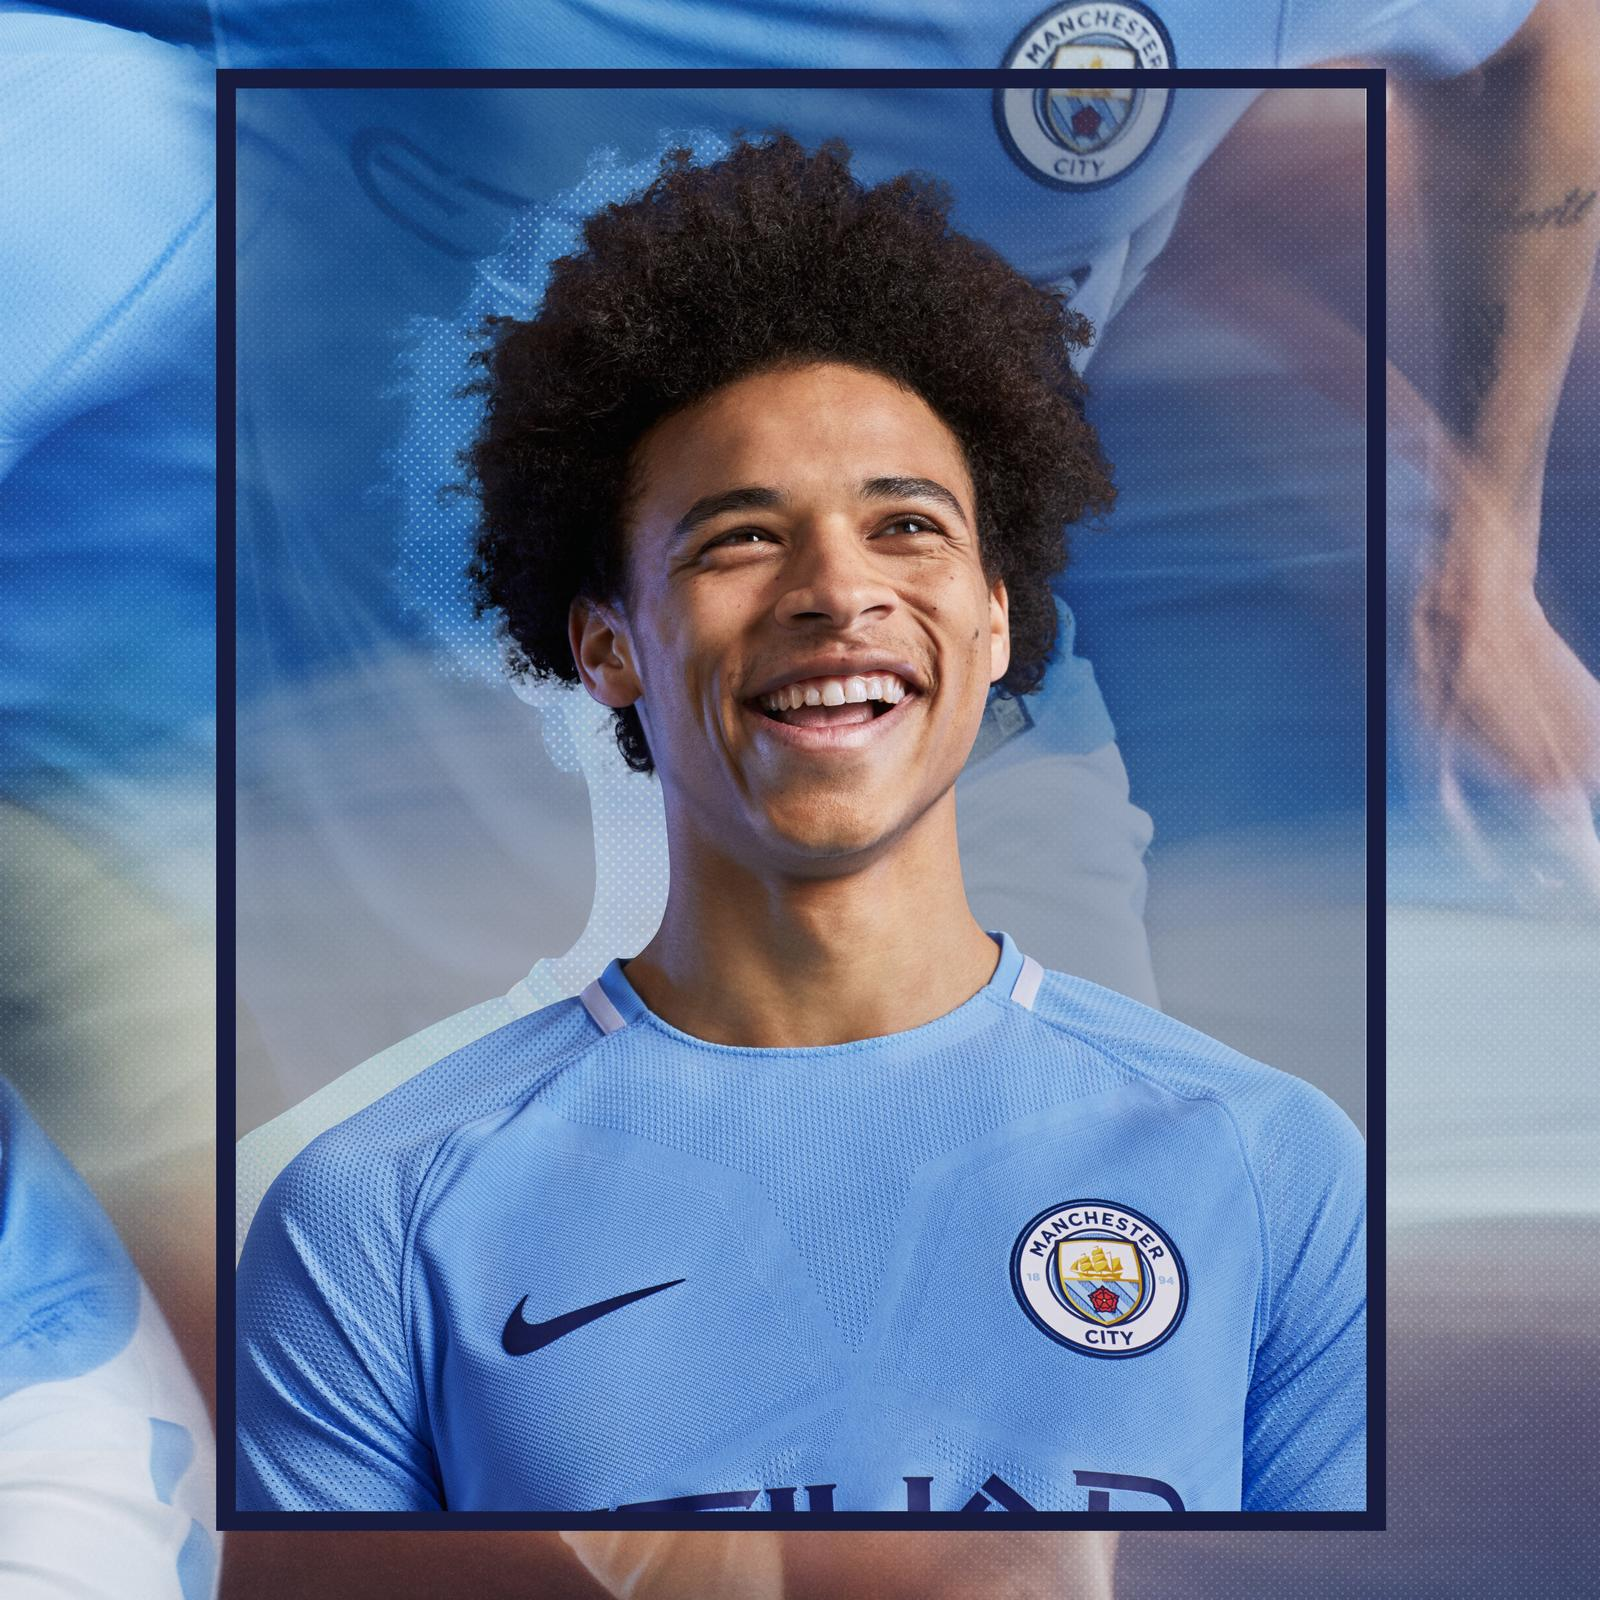 brand new 9522f 192e3 Man City 2017-18 kit: Manchester City unveil new jersey for ...